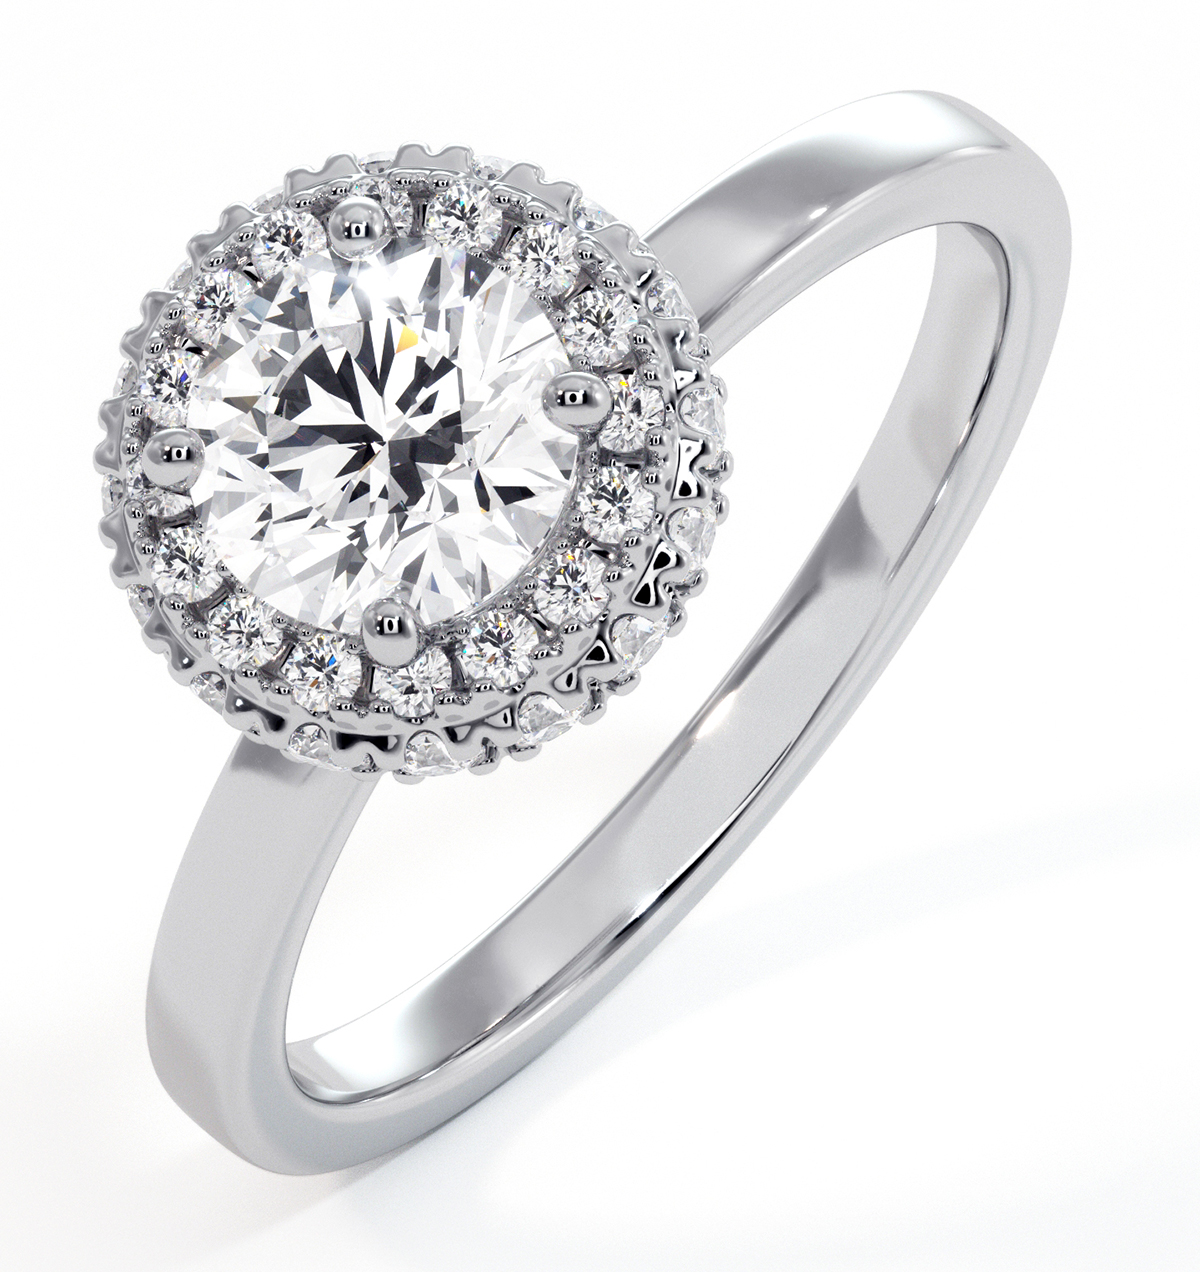 Eleanor GIA Diamond Halo Engagement Ring in Platinum 0.87ct G/SI2 - image 1